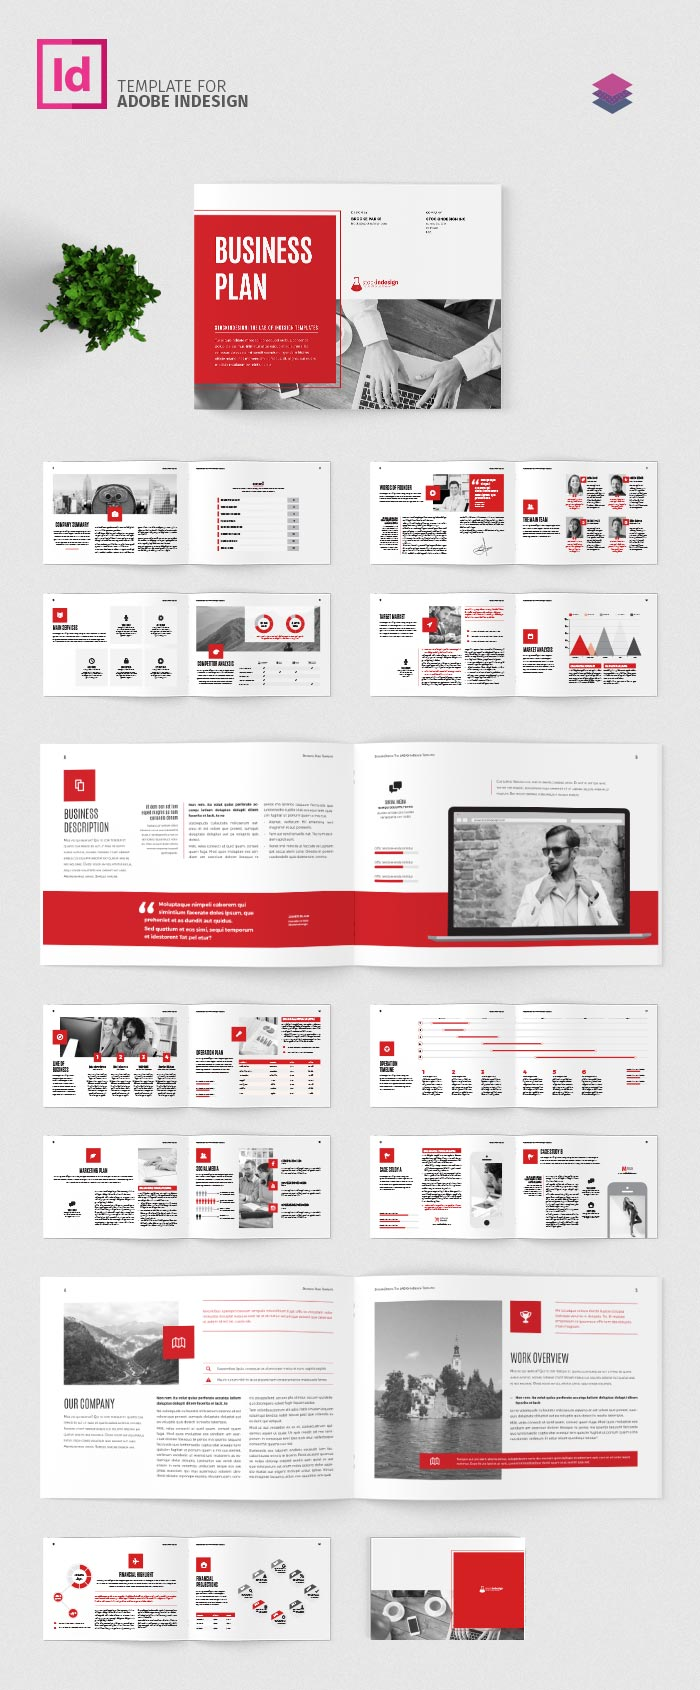 Business Plan Landscape Template | Adobe InDesign Template